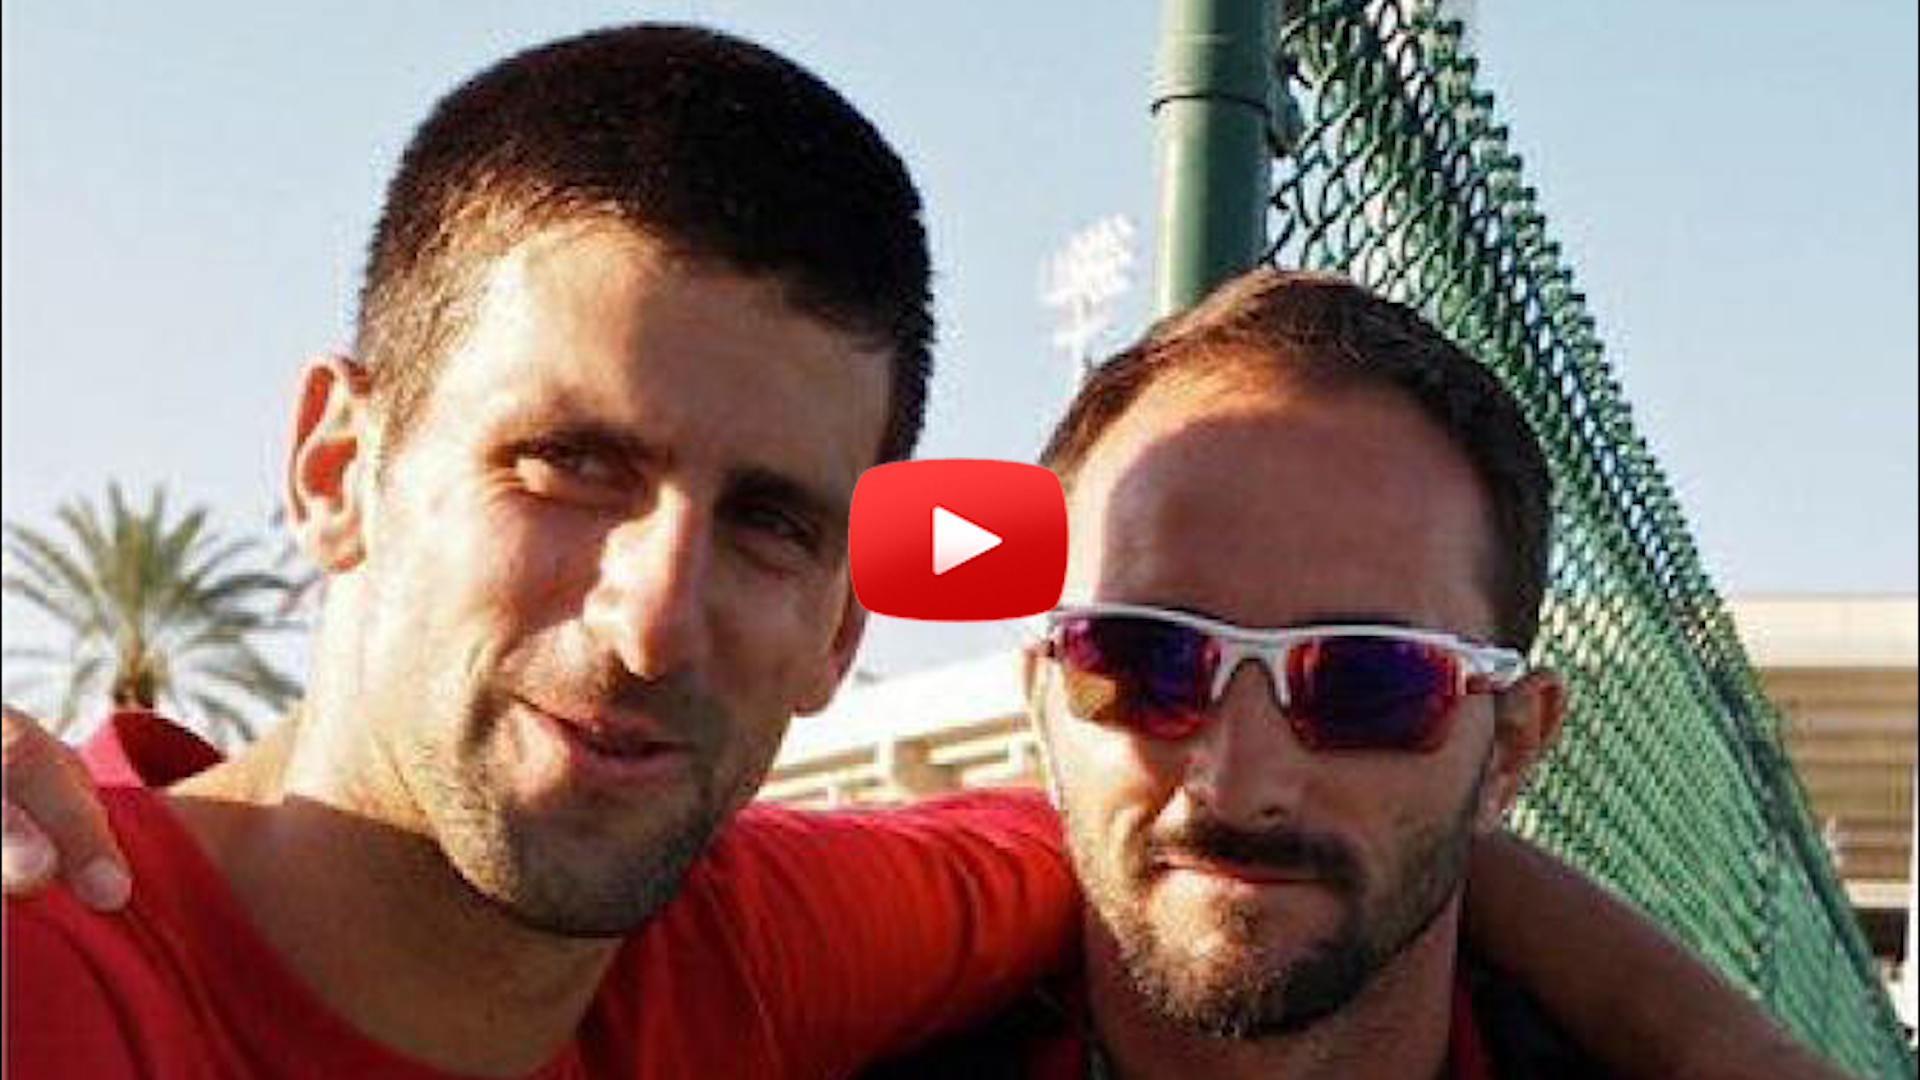 Novak Djokovic's New Coach-Roger Federer Bongo Battle